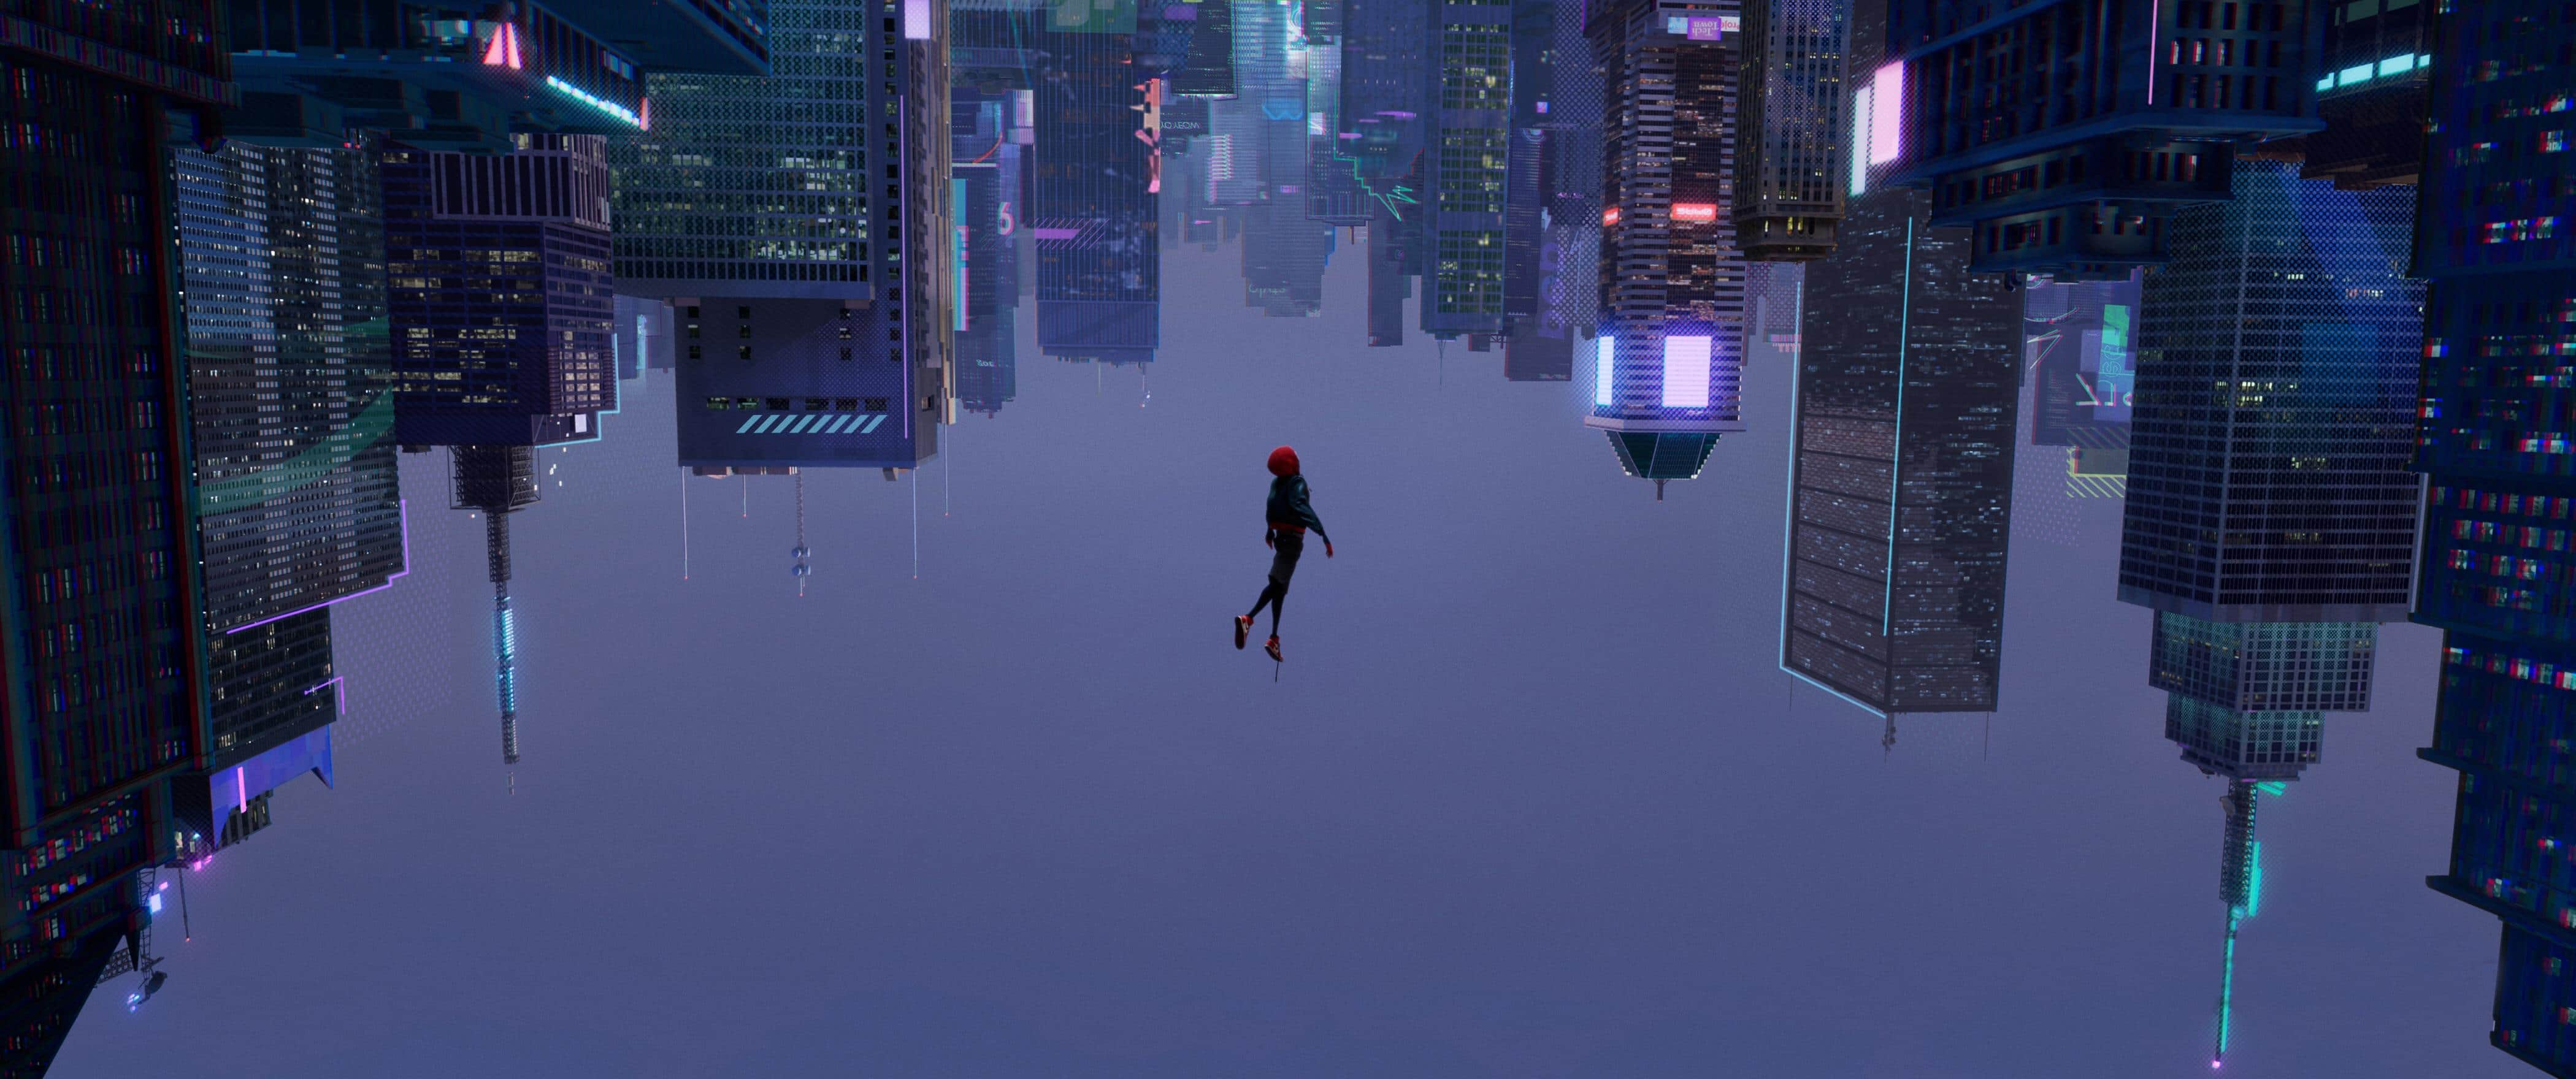 Spider-Man: Into the Spider-Verse: puro amor hacia Spidey